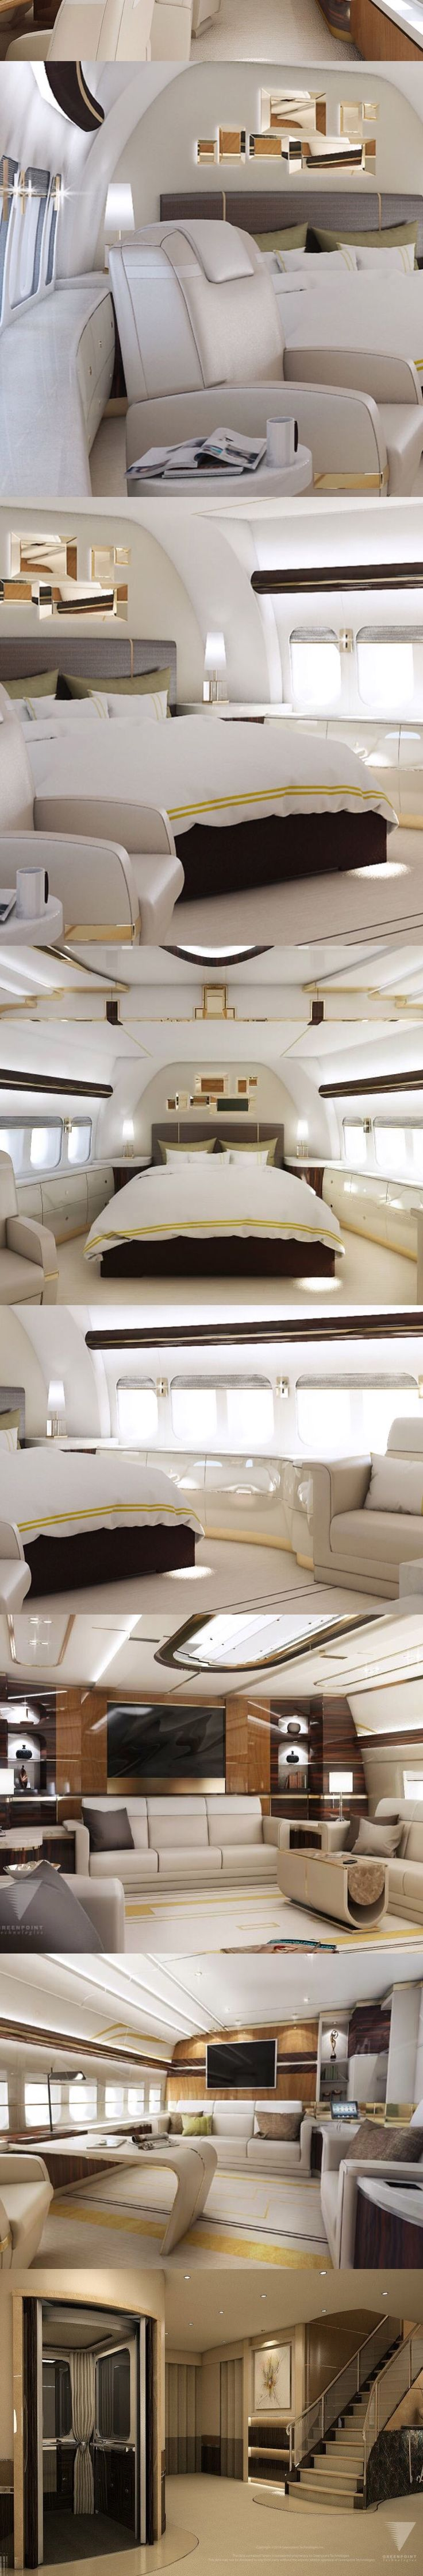 A Billionaire's Lifestyle - Private Jet -Collage by #Luxurydotcom ( from my Top pins Board )